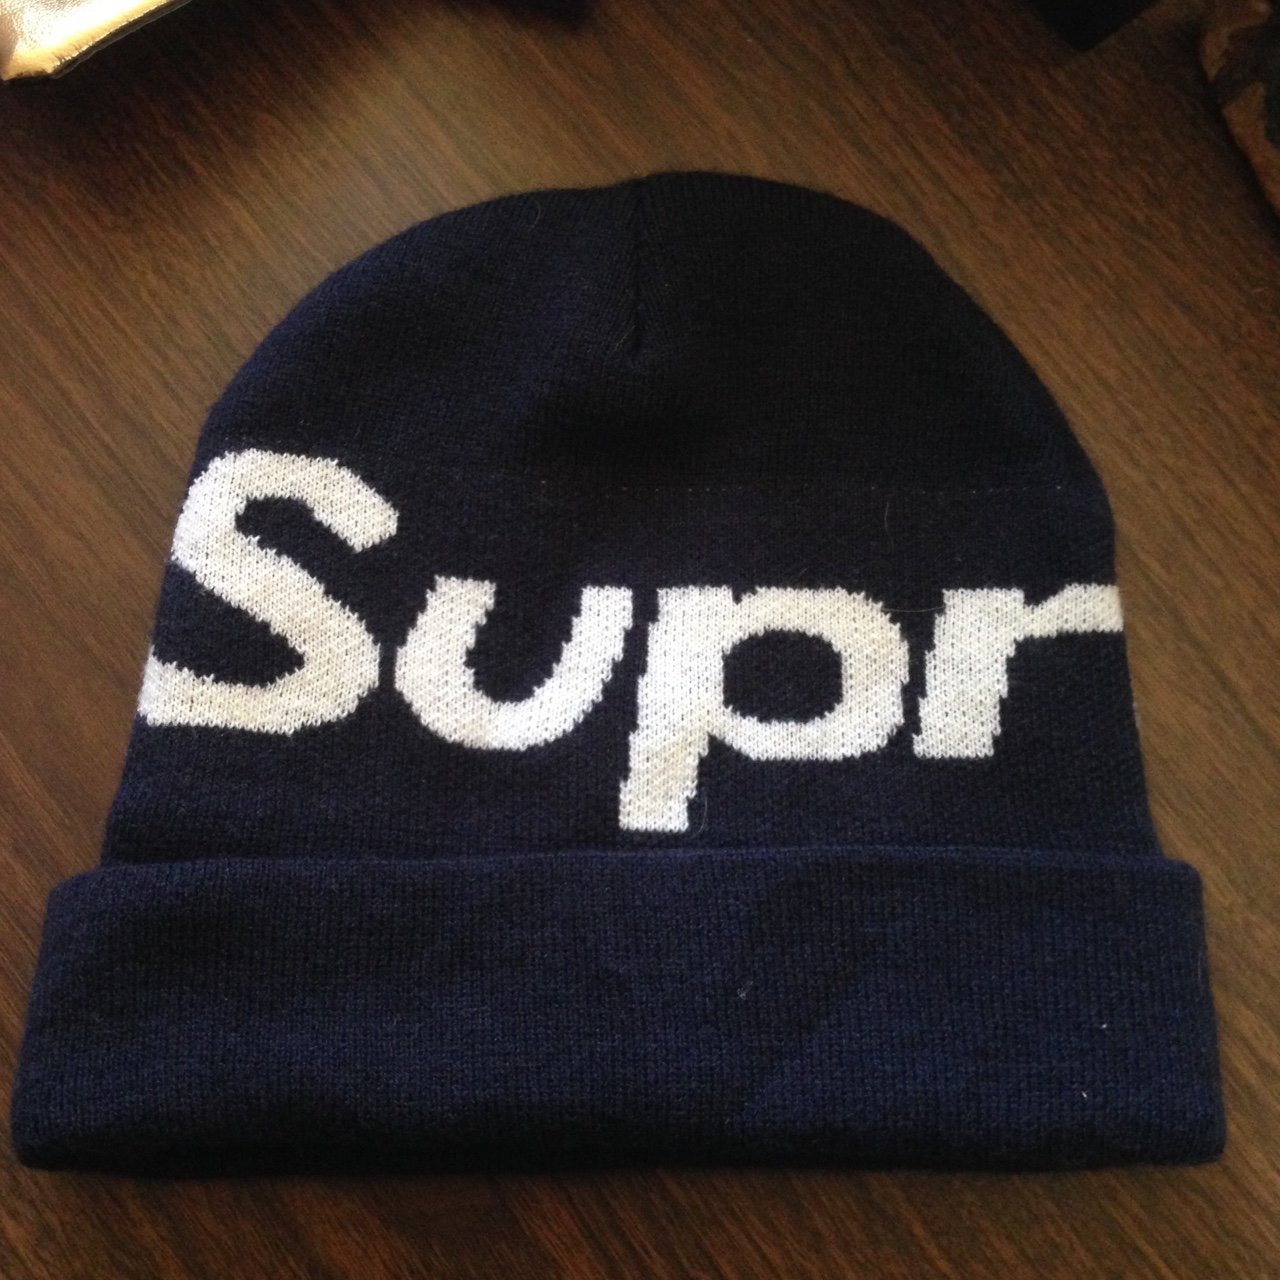 06965cc7c2d Authentic SUPREME Beanie. For guy or girl. Price negotiable - Depop